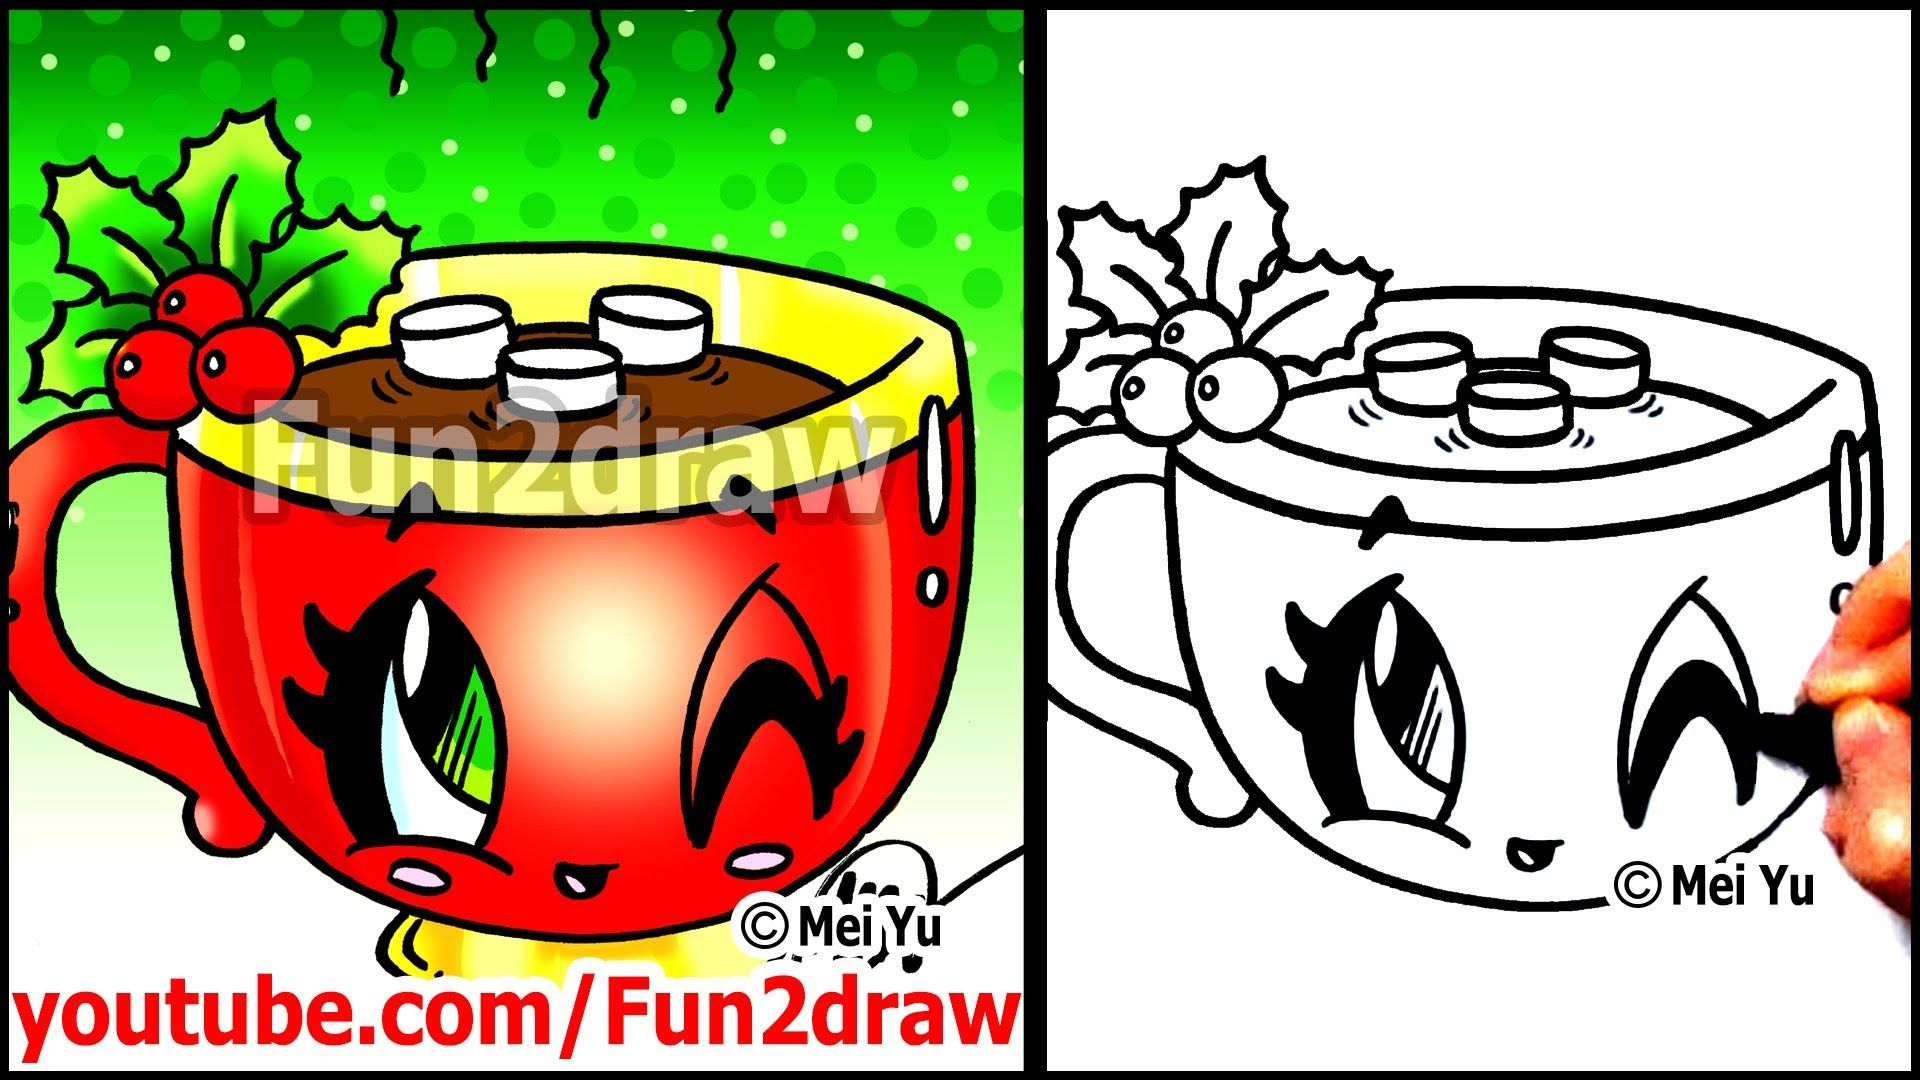 How To Draw Christmas Stuff.Christmas Stuff Drawing At Getdrawings Com Free For